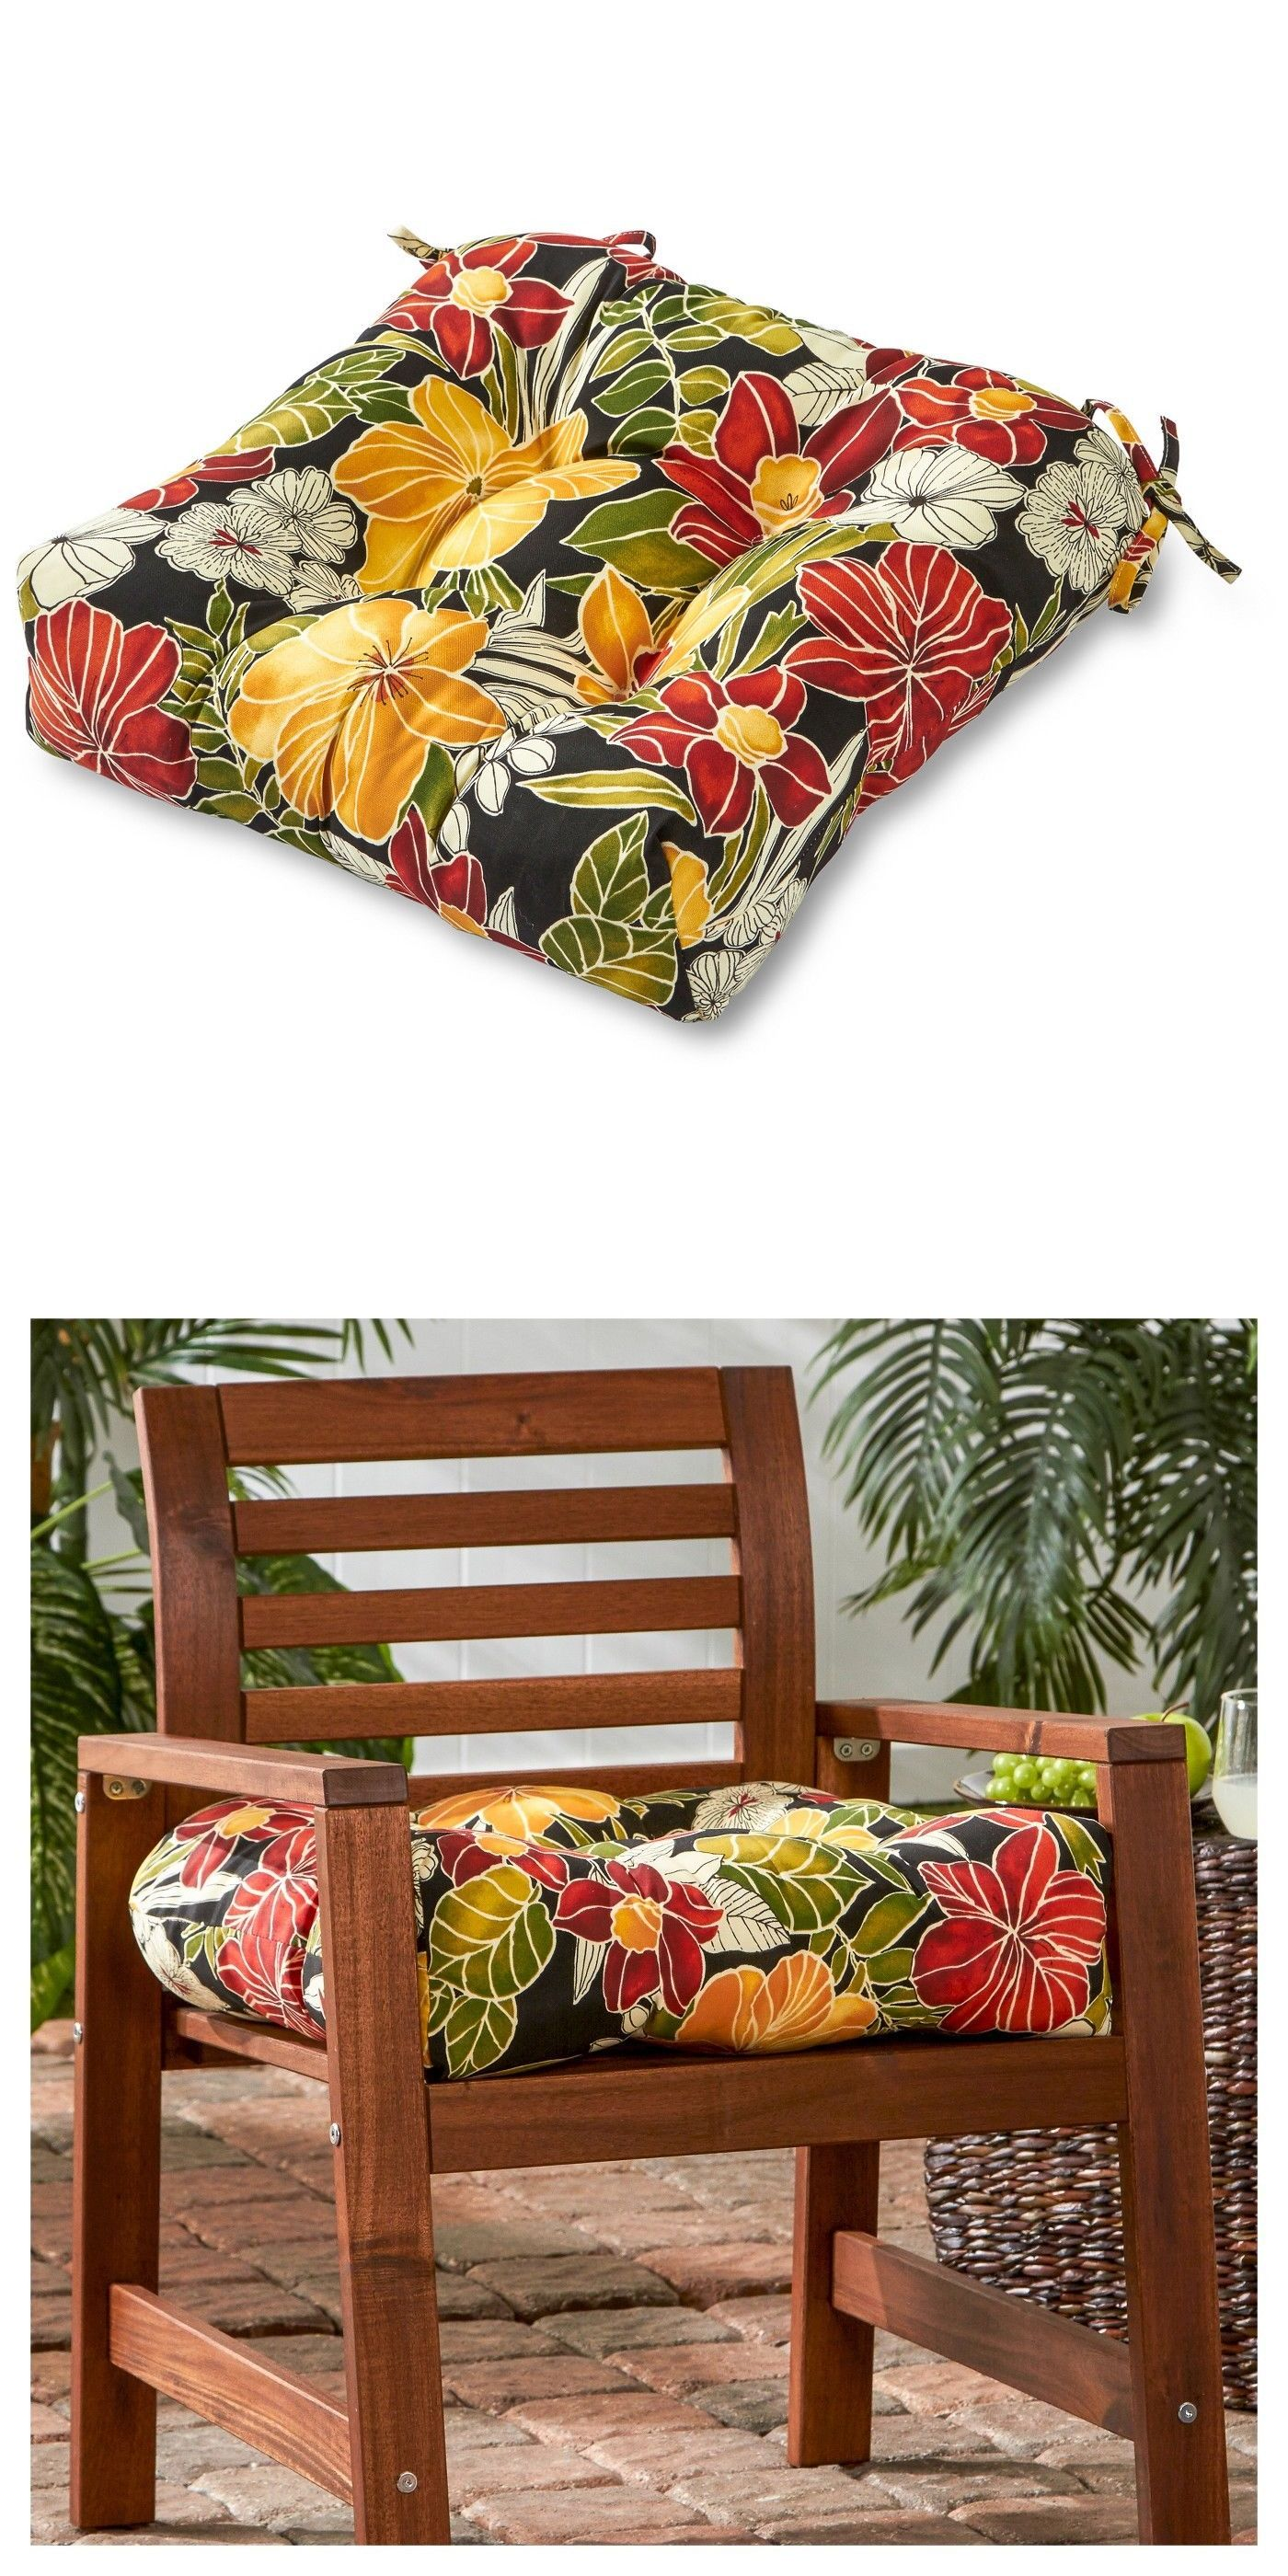 Patio Furniture Cushions And Pads 79683 Greendale Home Fashions